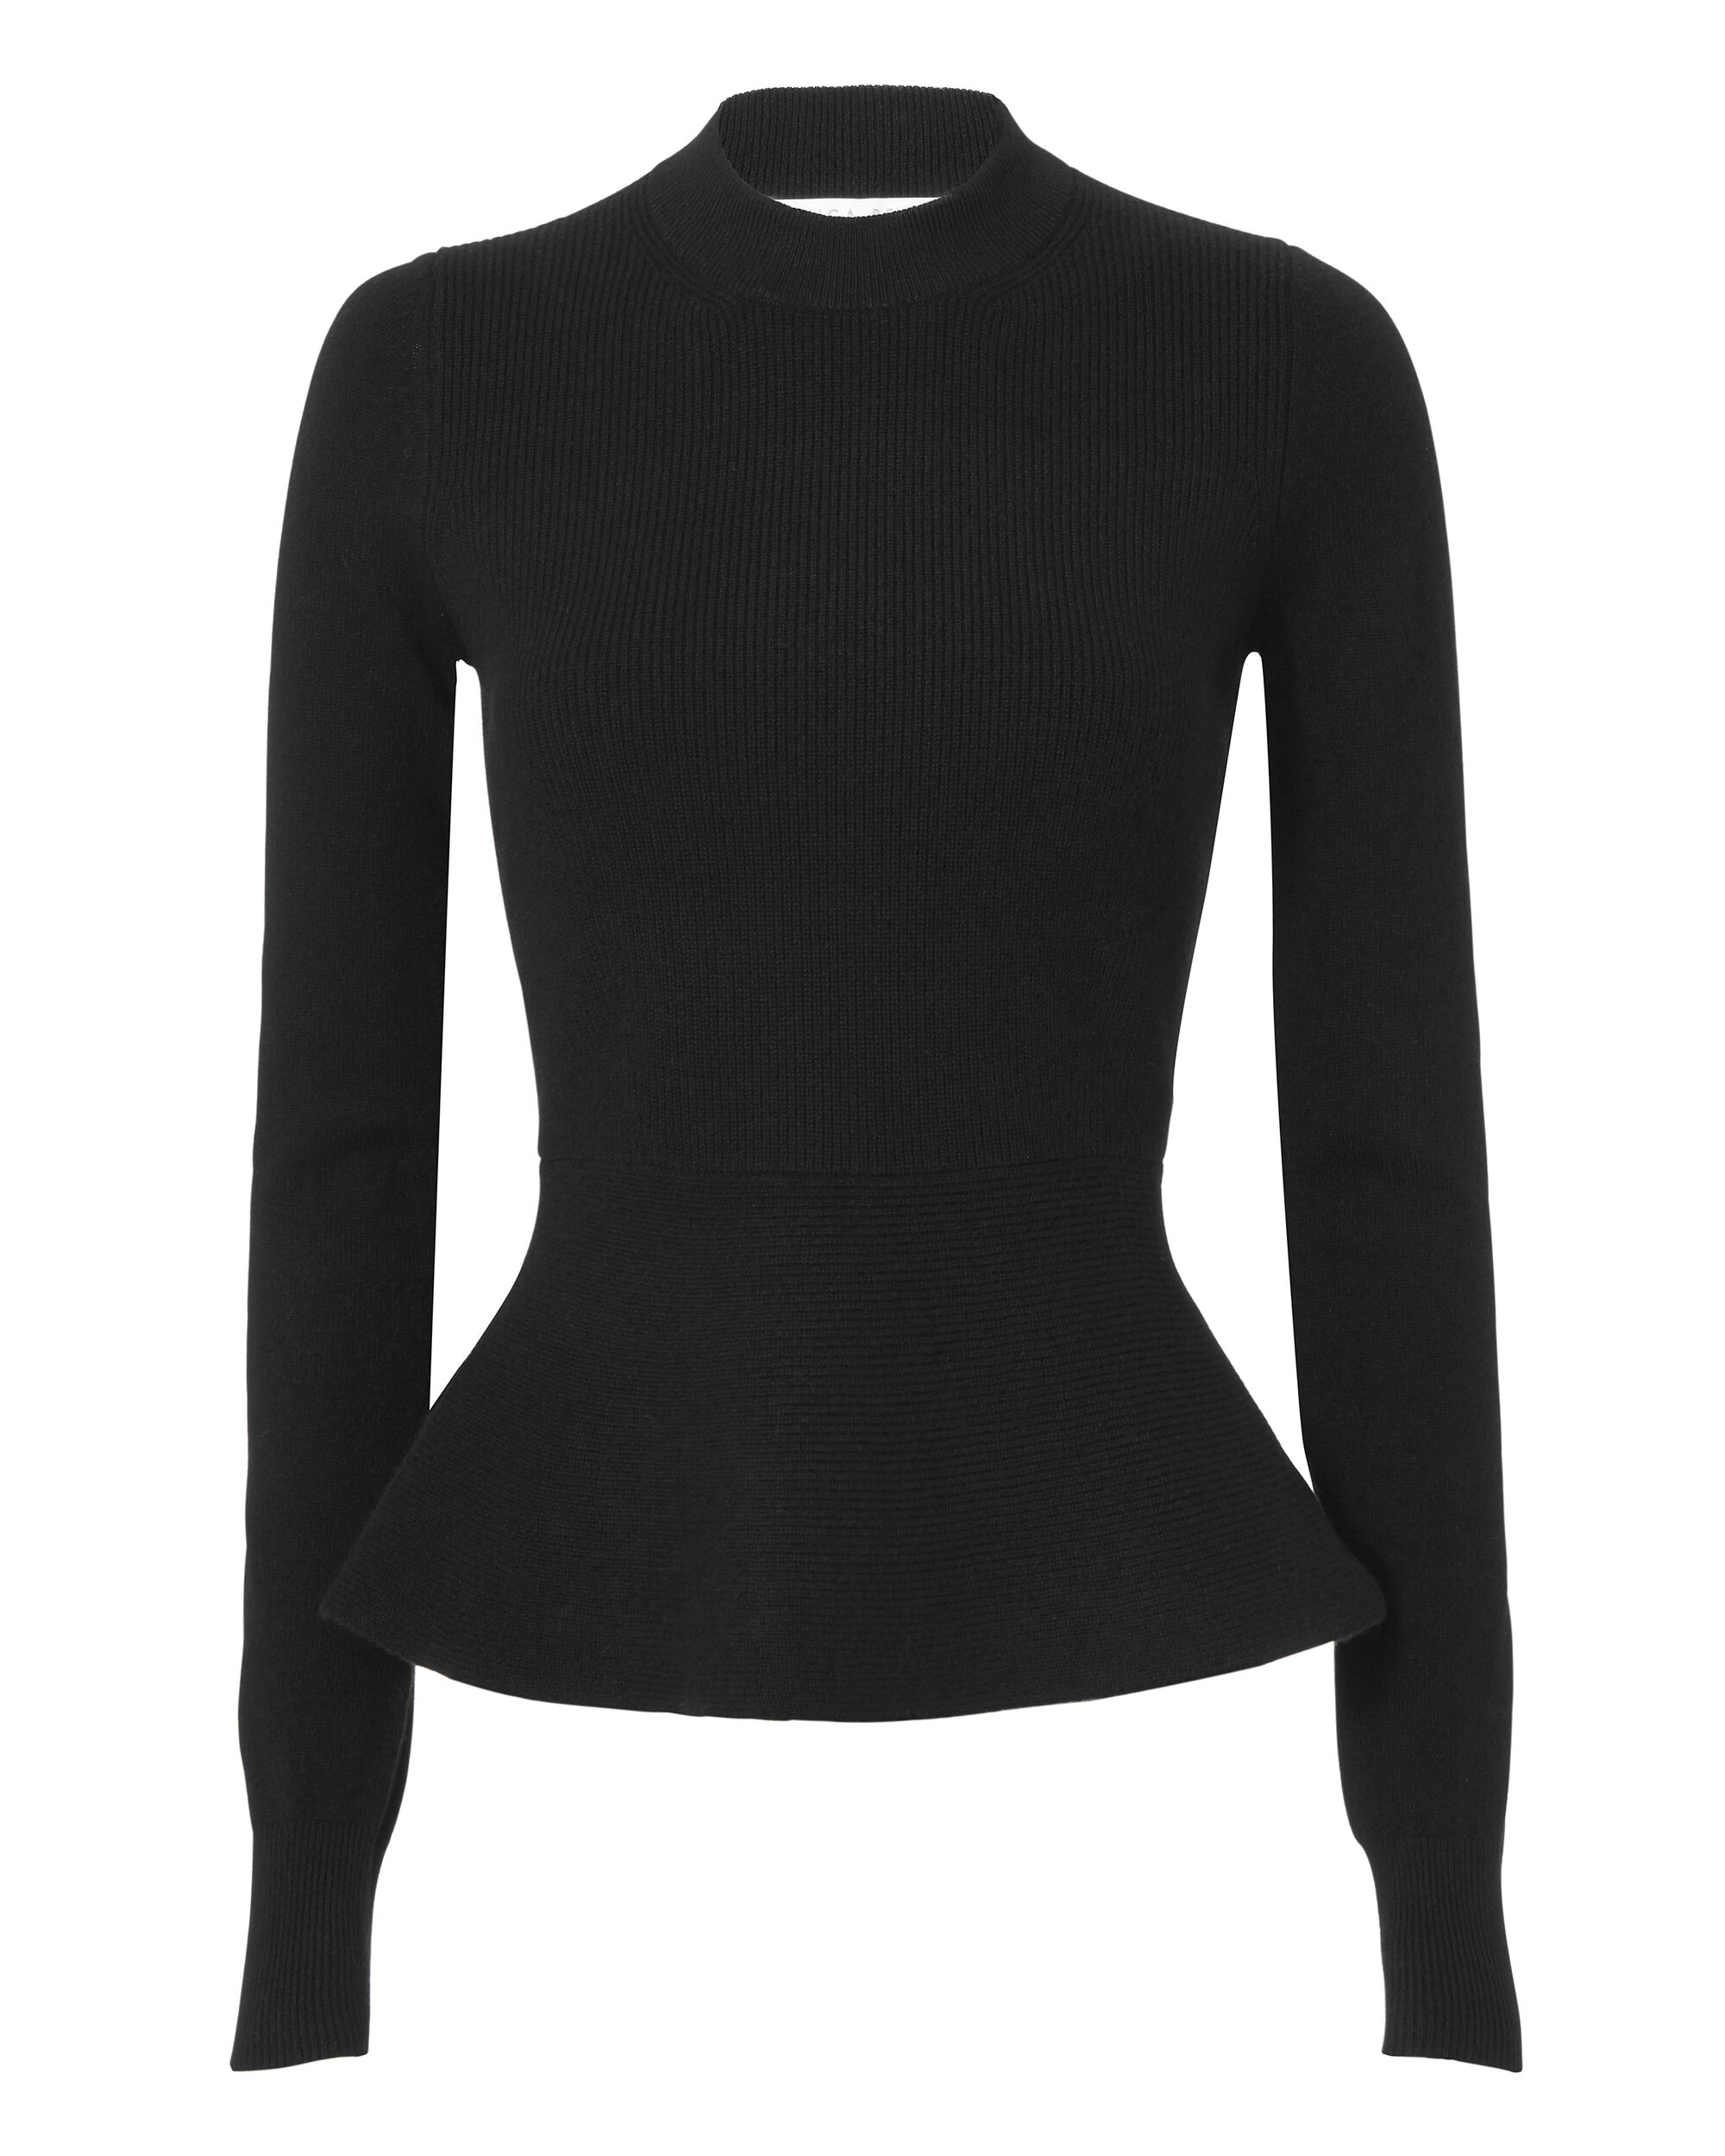 Raleigh Peplum Cashmere Sweater, BLACK, hi-res